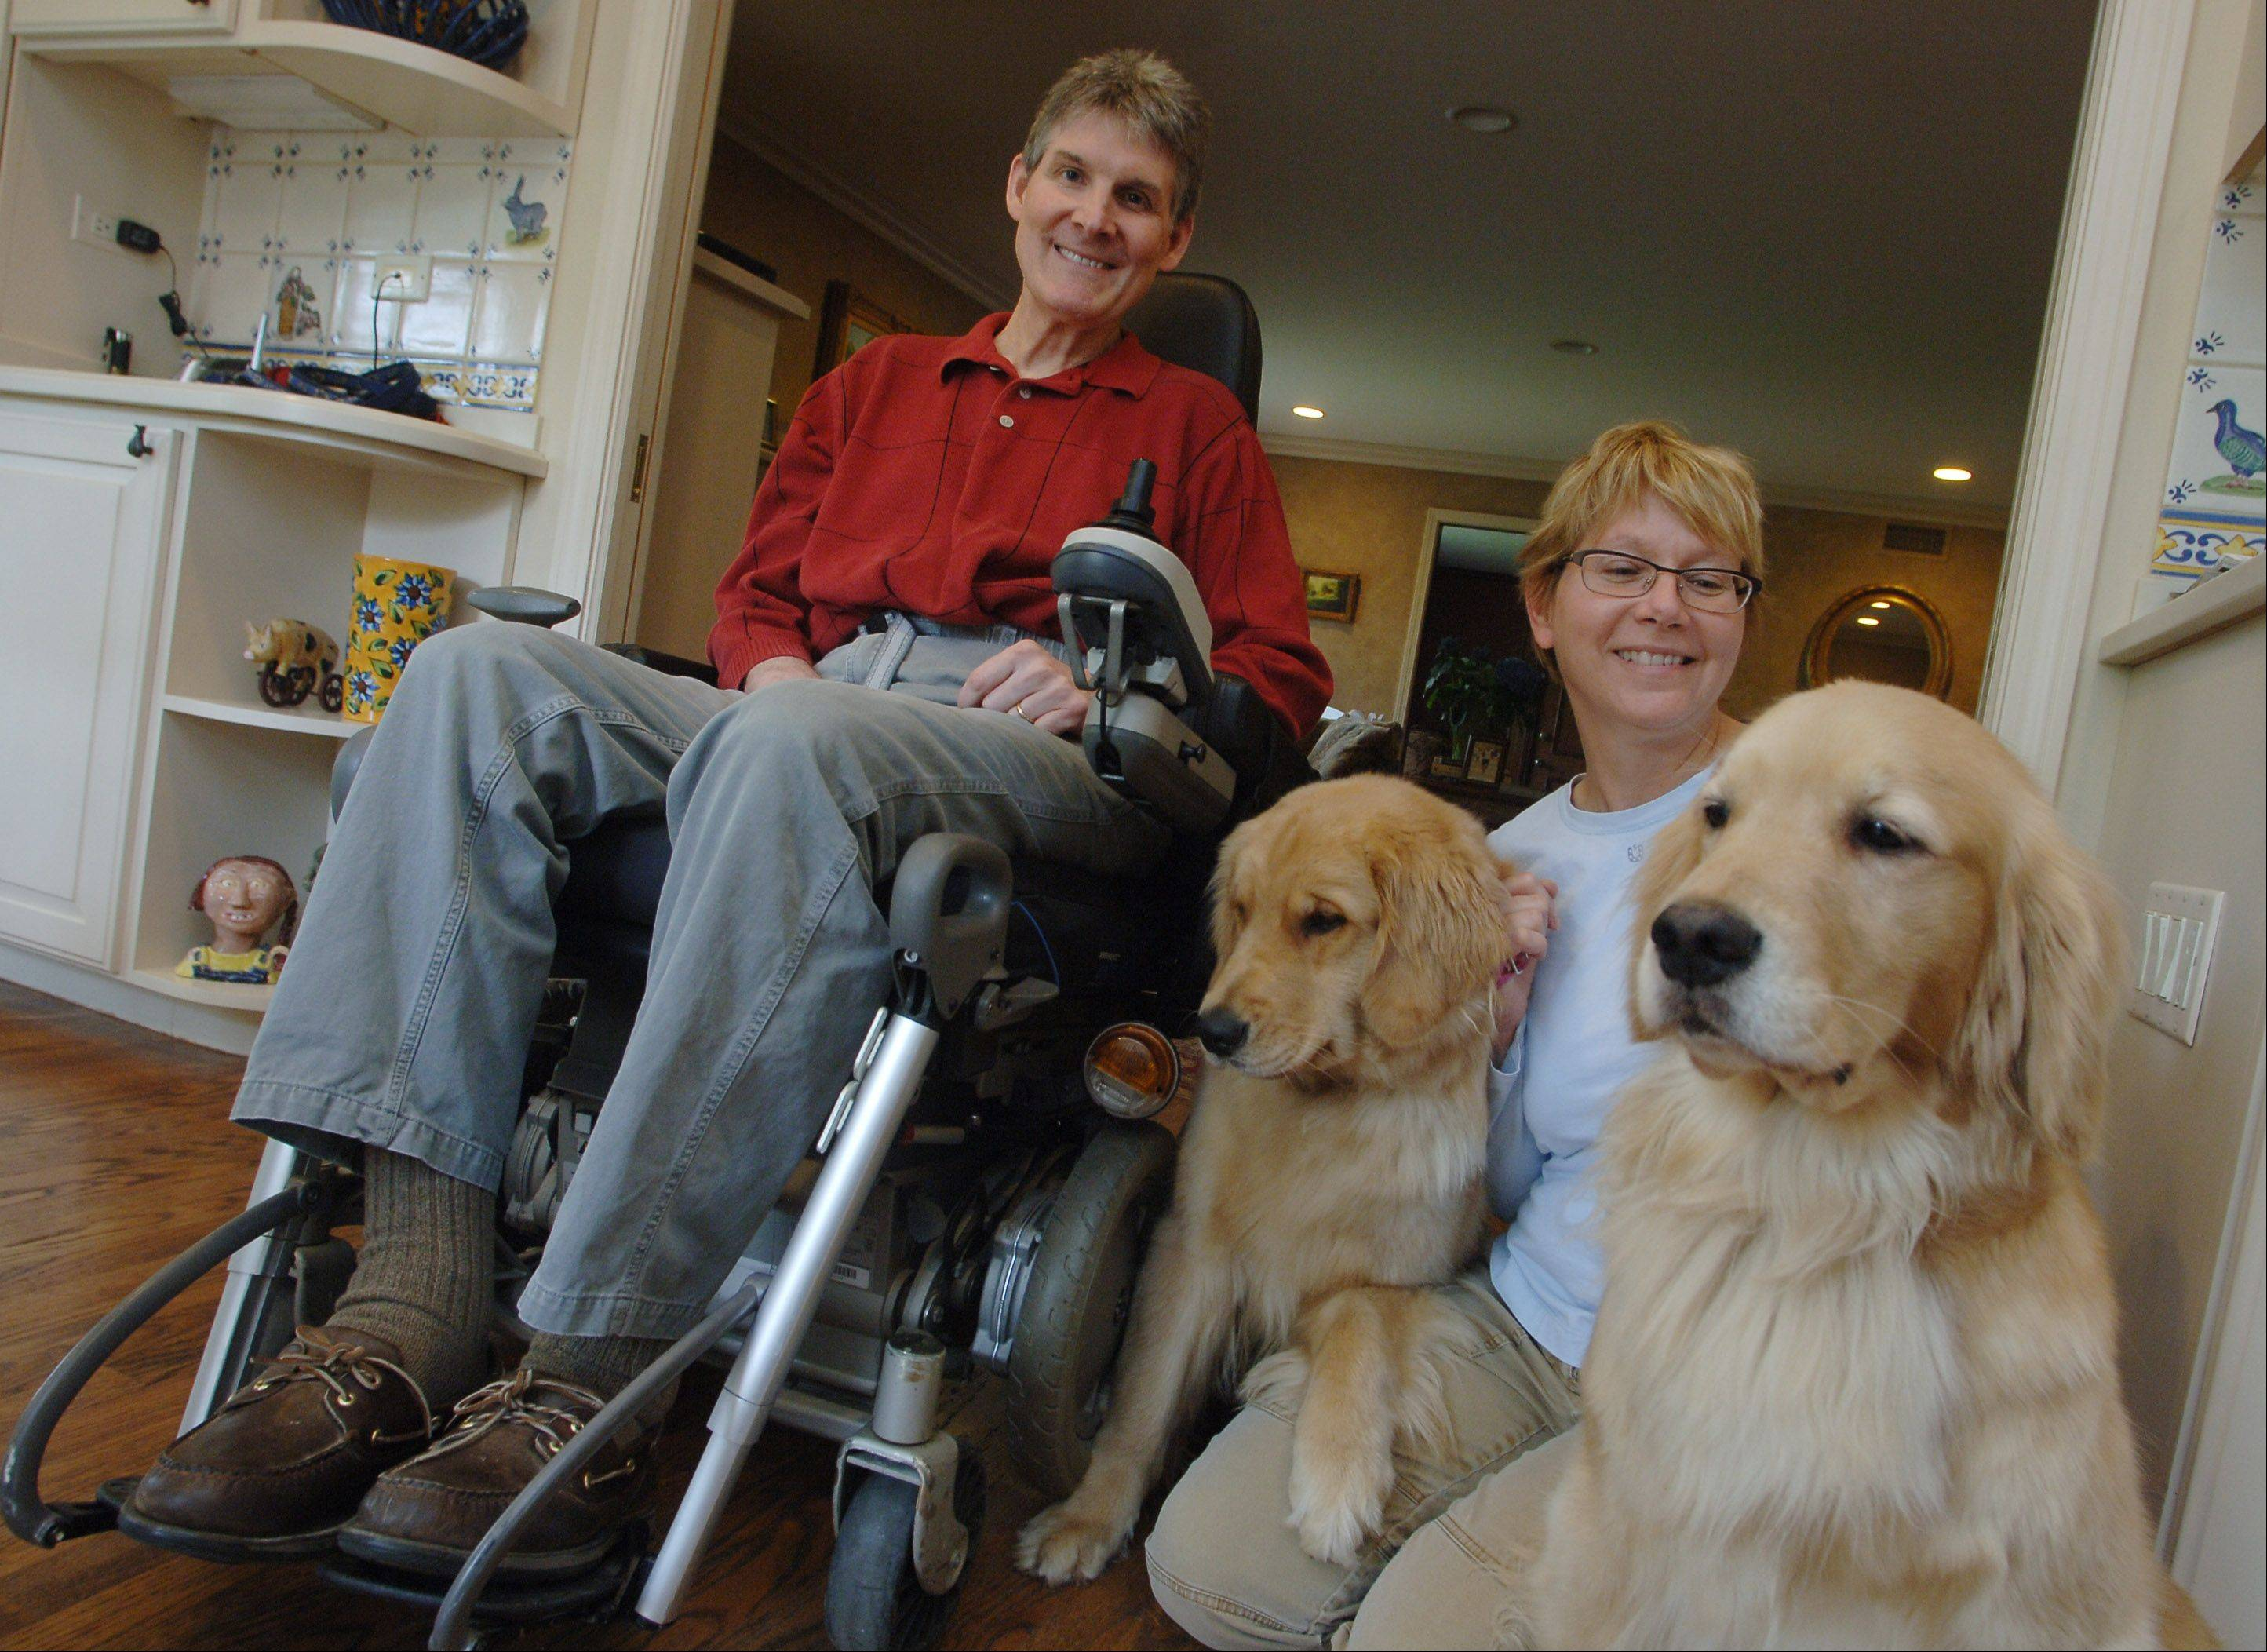 Multiple sclerosis put Bob Gregory in a wheelchair in 1995, but the Lincolnshire resident says he expects a cure that will get him back on his feet. With the ever-present help of his wife, Pat, (and maybe even golden retrievers Mary Rose and Dee Rose), the Gregorys will host a walk May 6 that aims to raise more than $30,000 to cure MS.